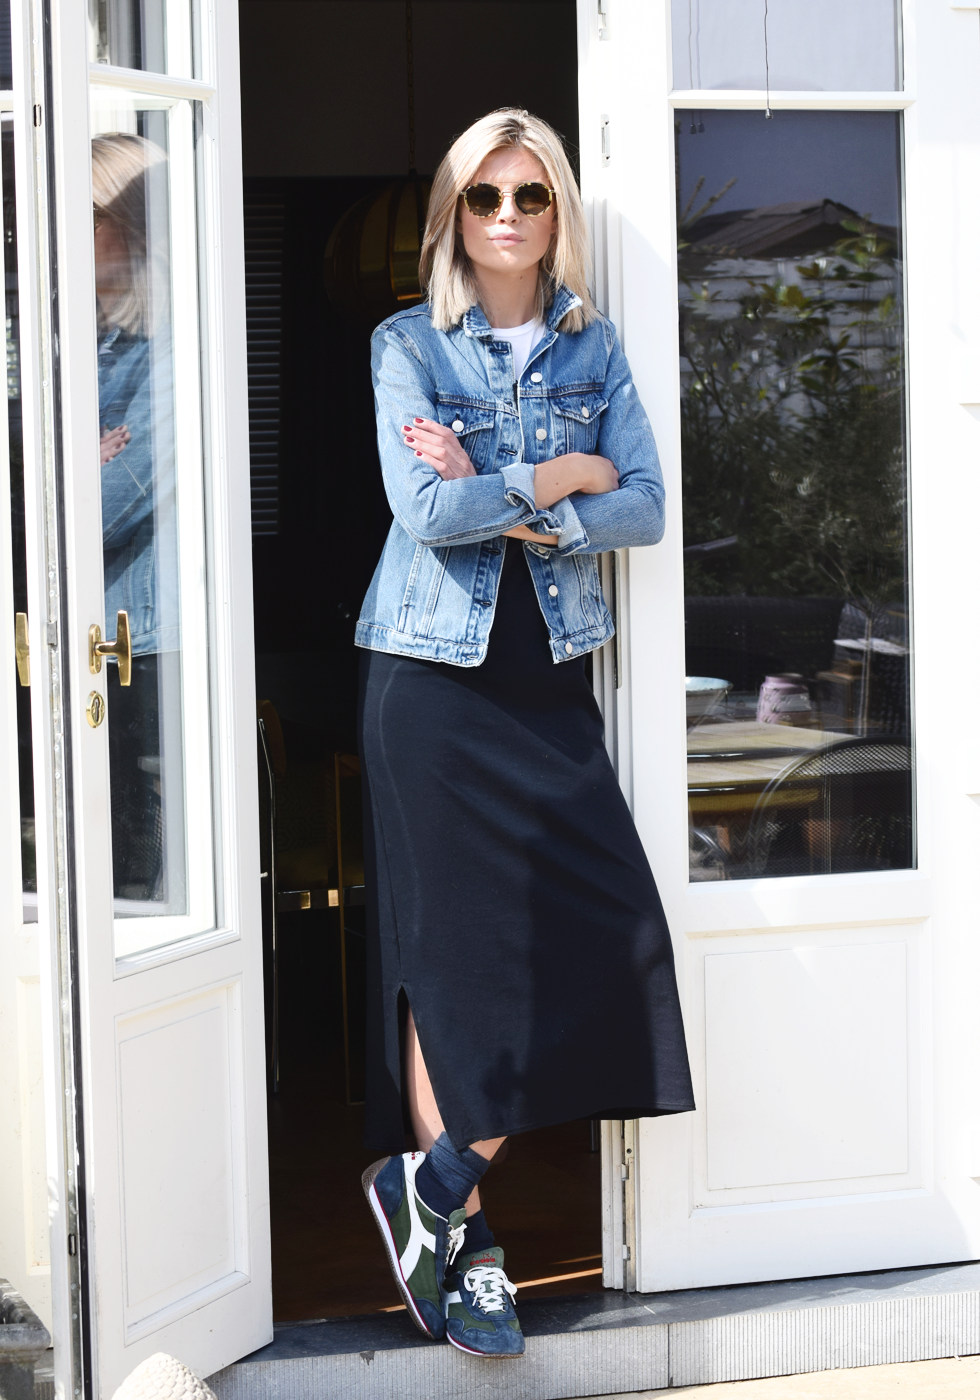 MbyM, Outfit of the day, Diadora, Made & More, Falke, Céline, Dewolf, ootd, style, fashion, blogger